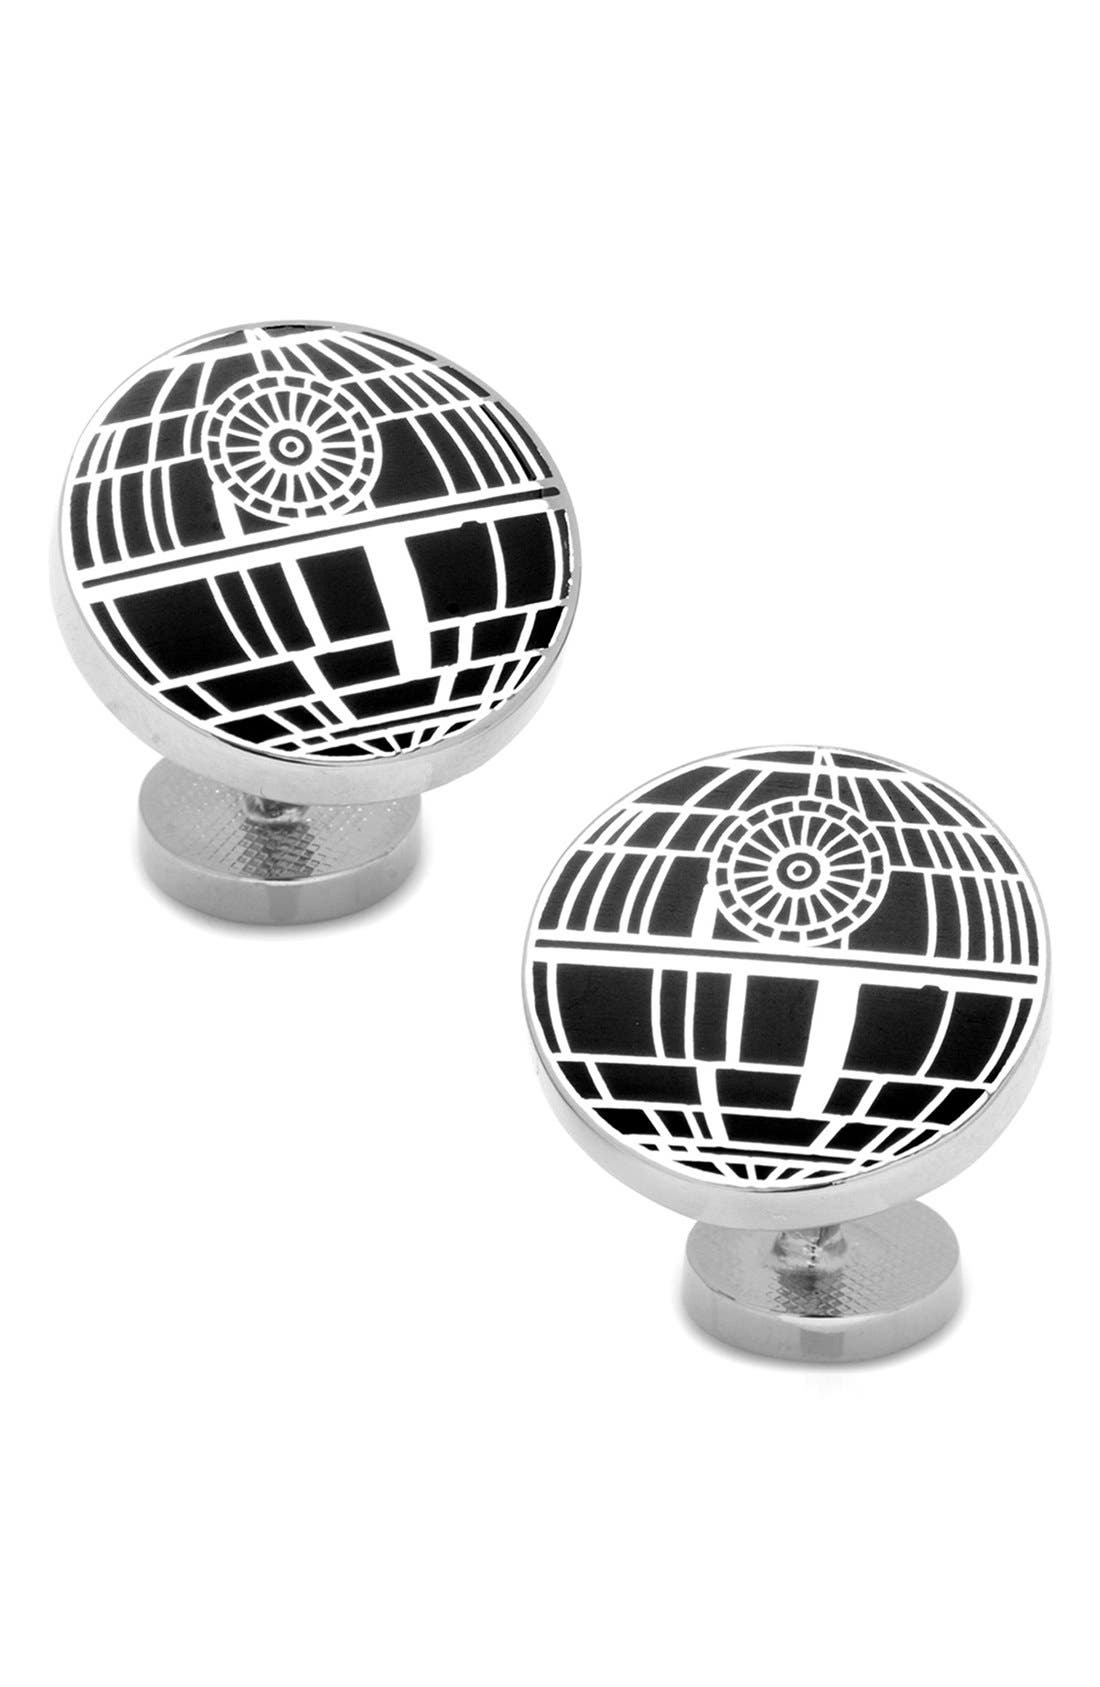 'Star Wars<sup>™</sup> - Death Star' Cuff Links,                         Main,                         color, BLACK/ SILVER